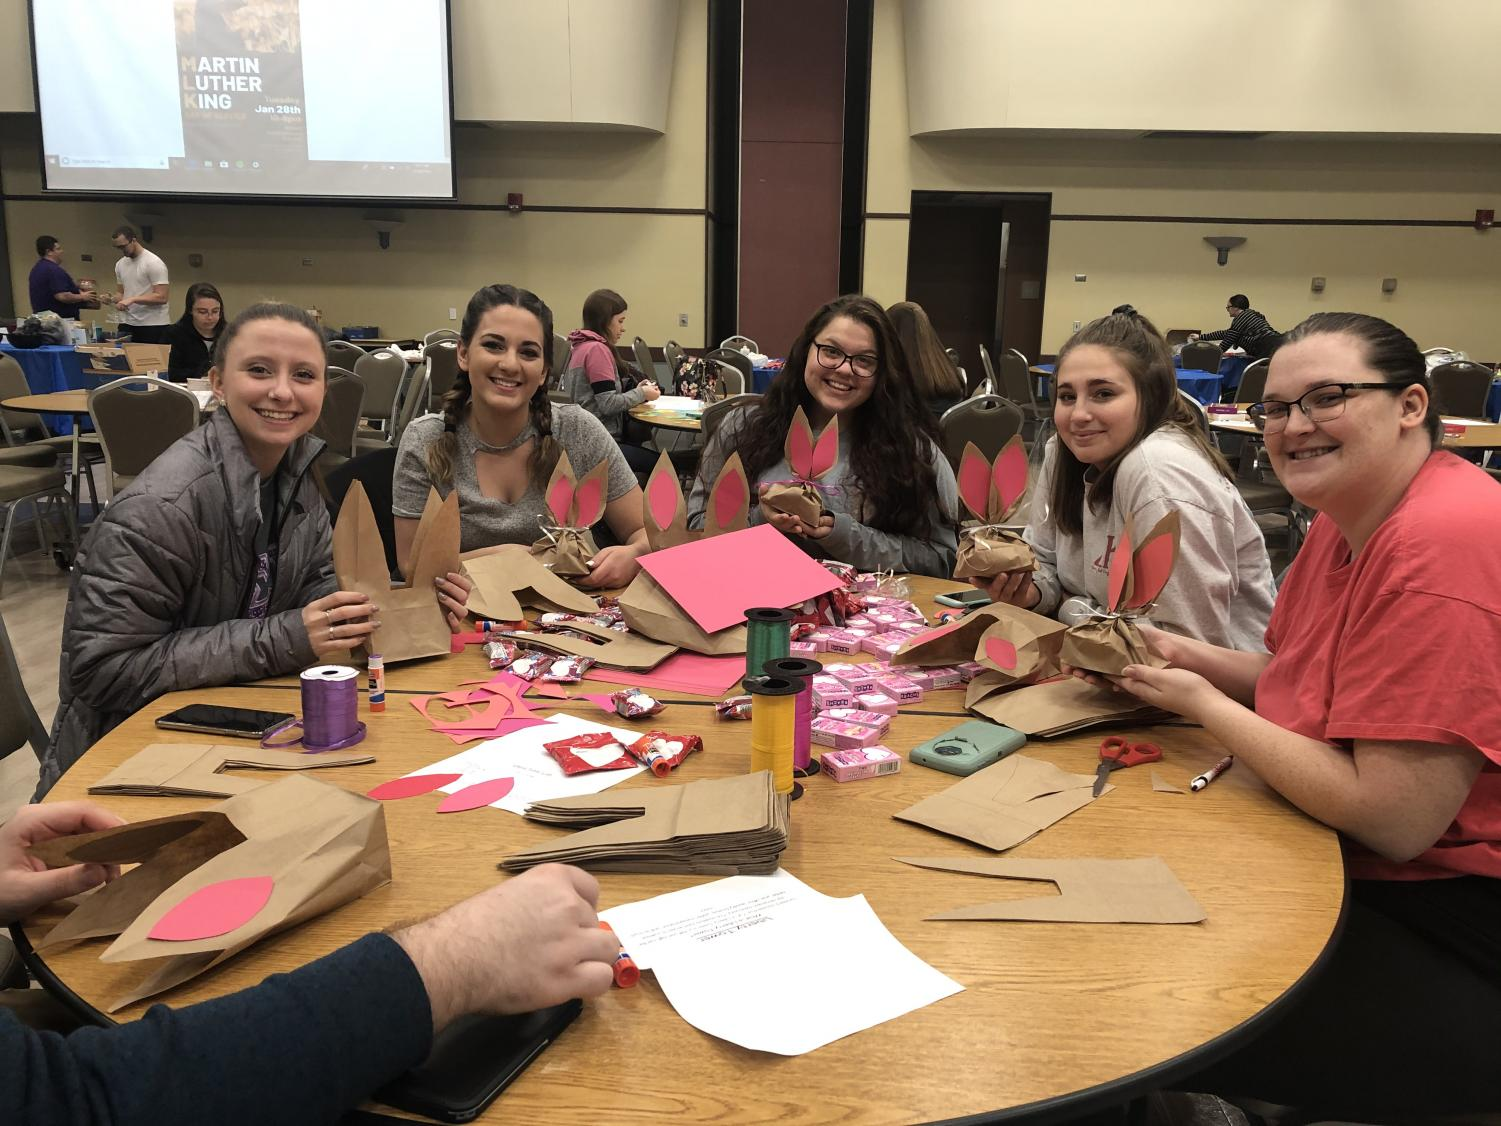 Members of Sigma Kappa sorority participate in Cal U's